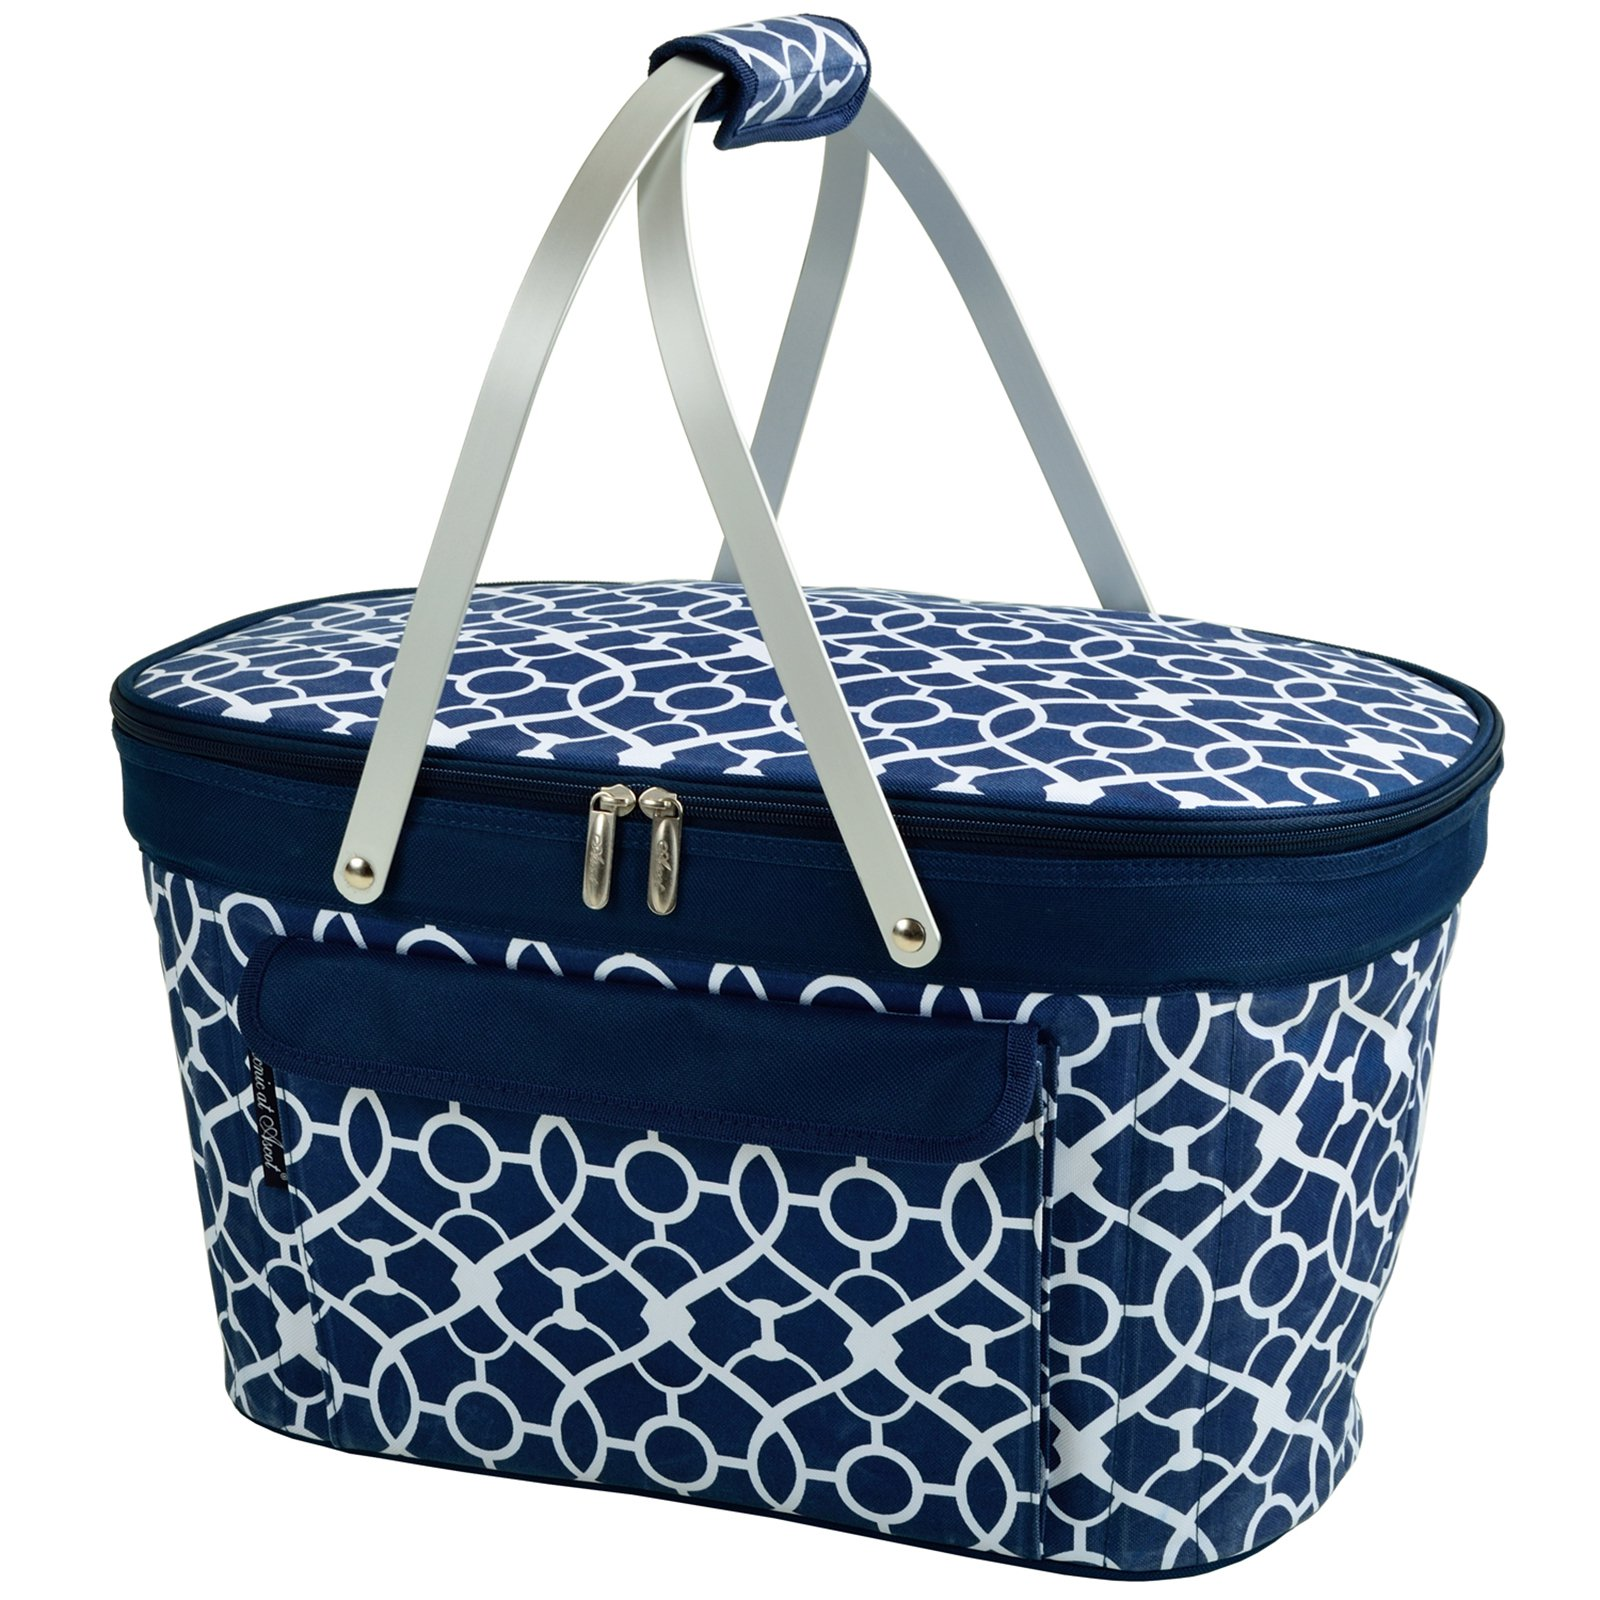 Picnic At Ascot Collapsible Insulated Picnic Basket